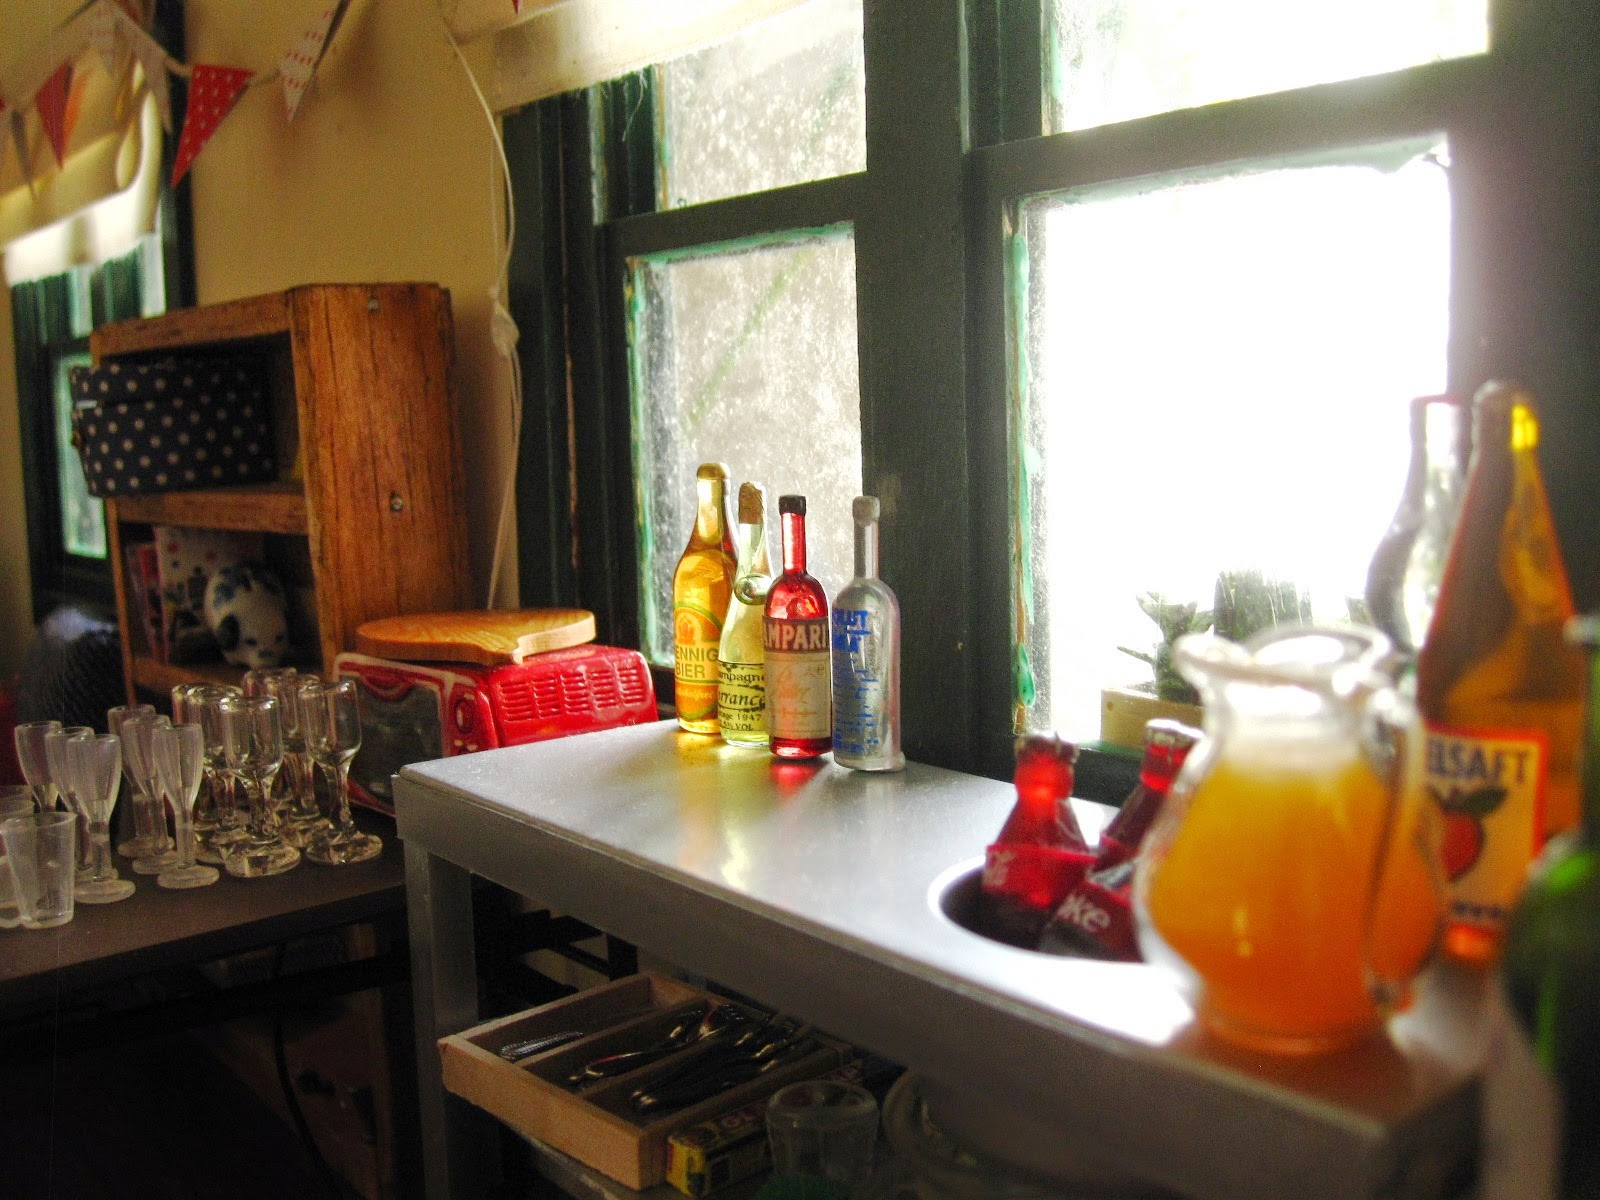 Selection of miniature dolls' house alcoholic and non-alcoholic drinks arranged in a kitchen, ready for a party.